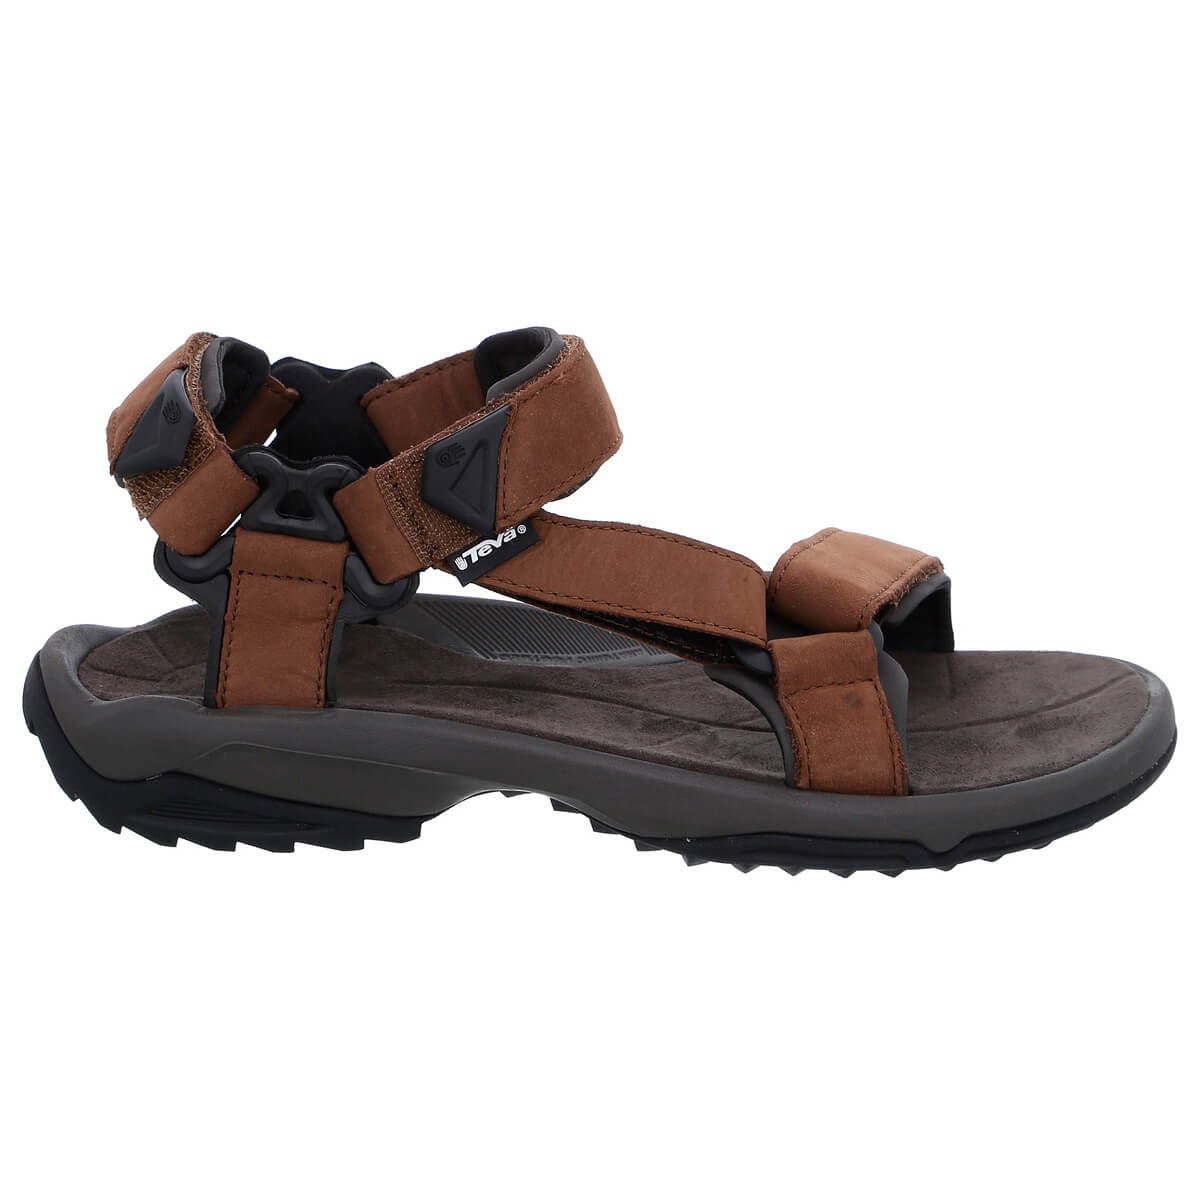 669451b4135f95 Teva Terra Fi Lite Leather - Sandals Men s